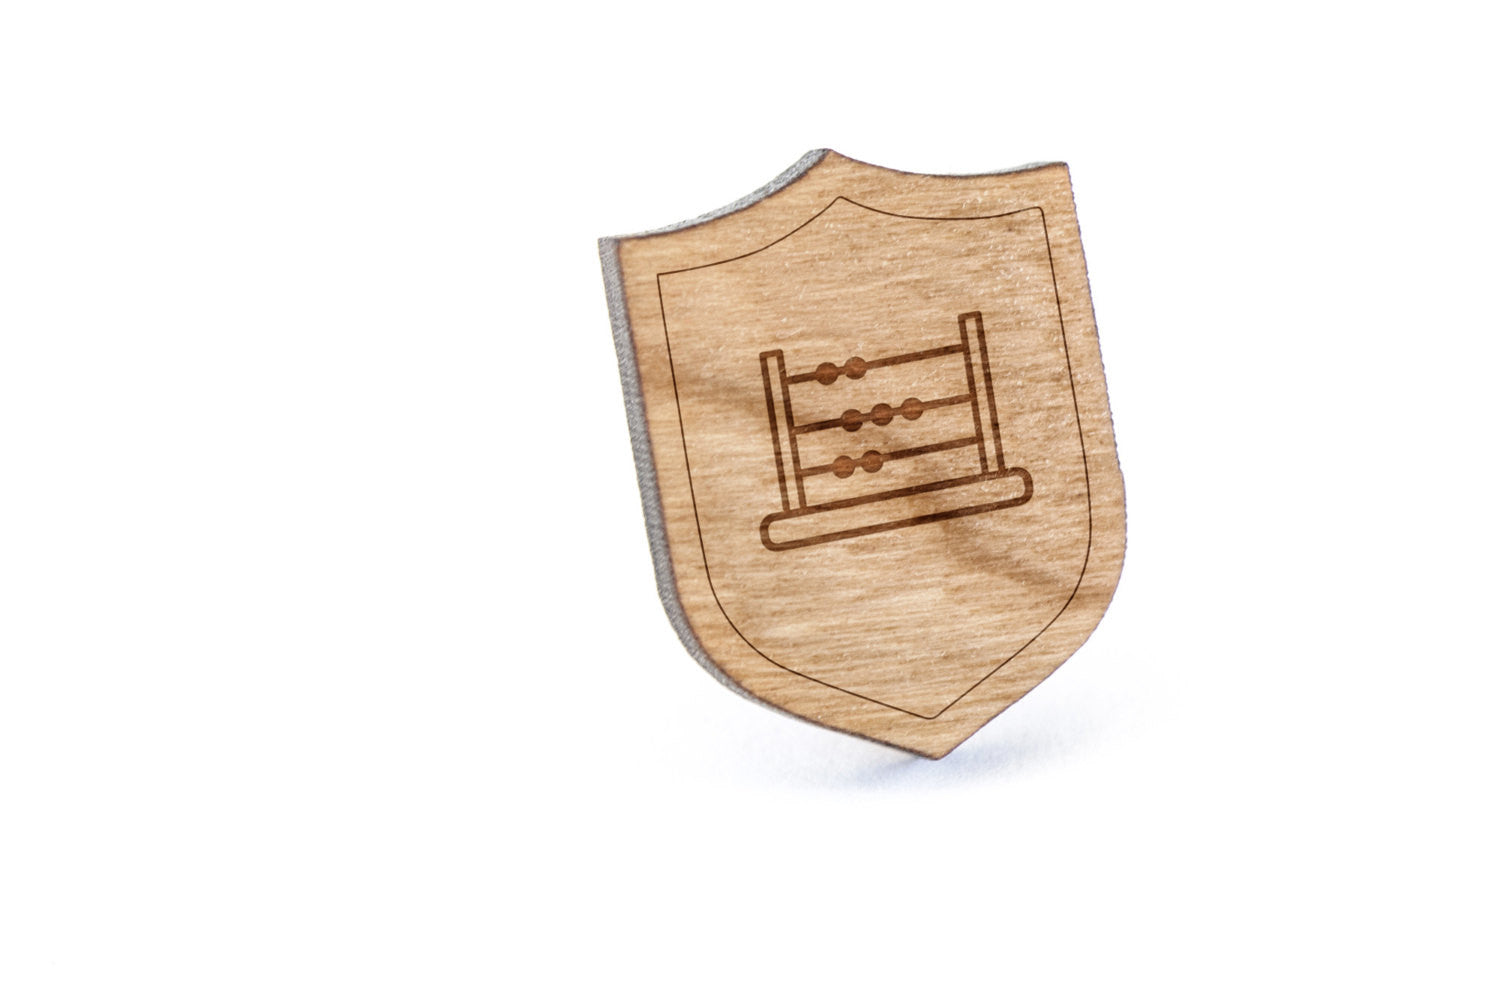 Cherry Wood Tie Bar Engraved in The USA Wooden Accessories Company Wooden Tie Clips with Laser Engraved Army Soldier Design